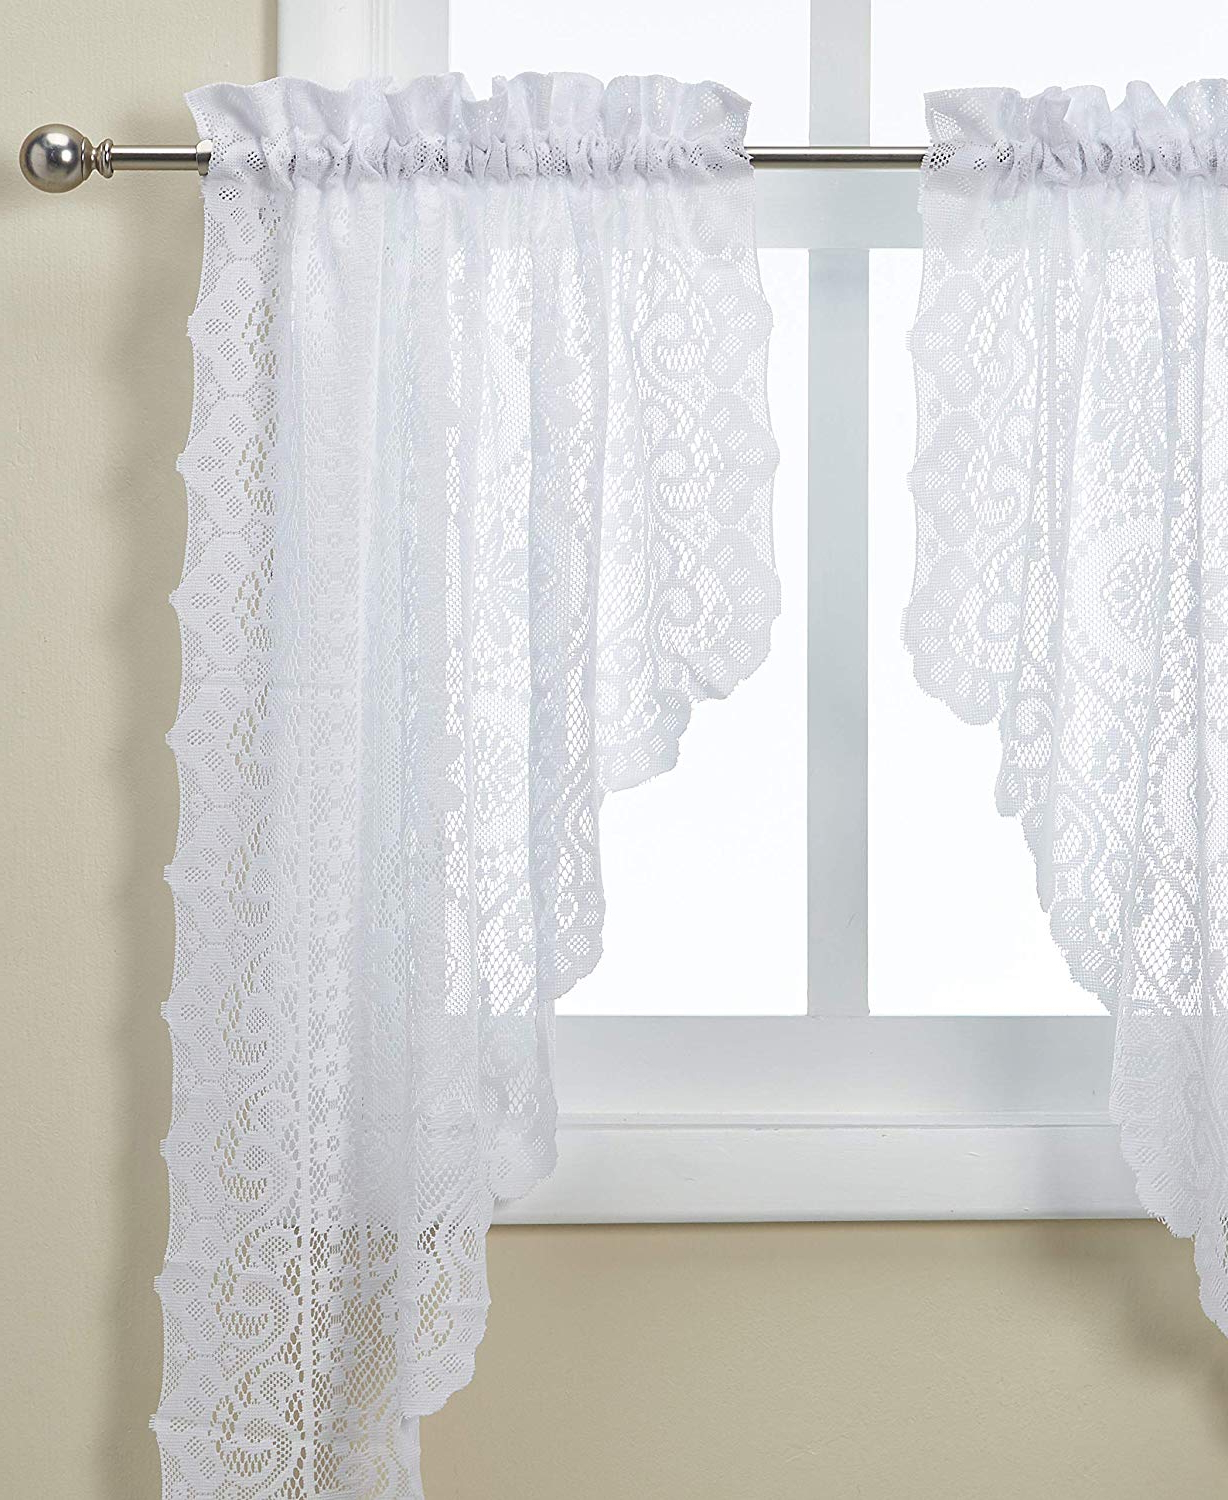 Most Recent Luxurious Old World Style Lace Window Curtain Panels With Regard To Lorraine Home Fashions Hopewell Lace Window Swags, 58 Inch38 Inch, White, Set Of (View 16 of 20)